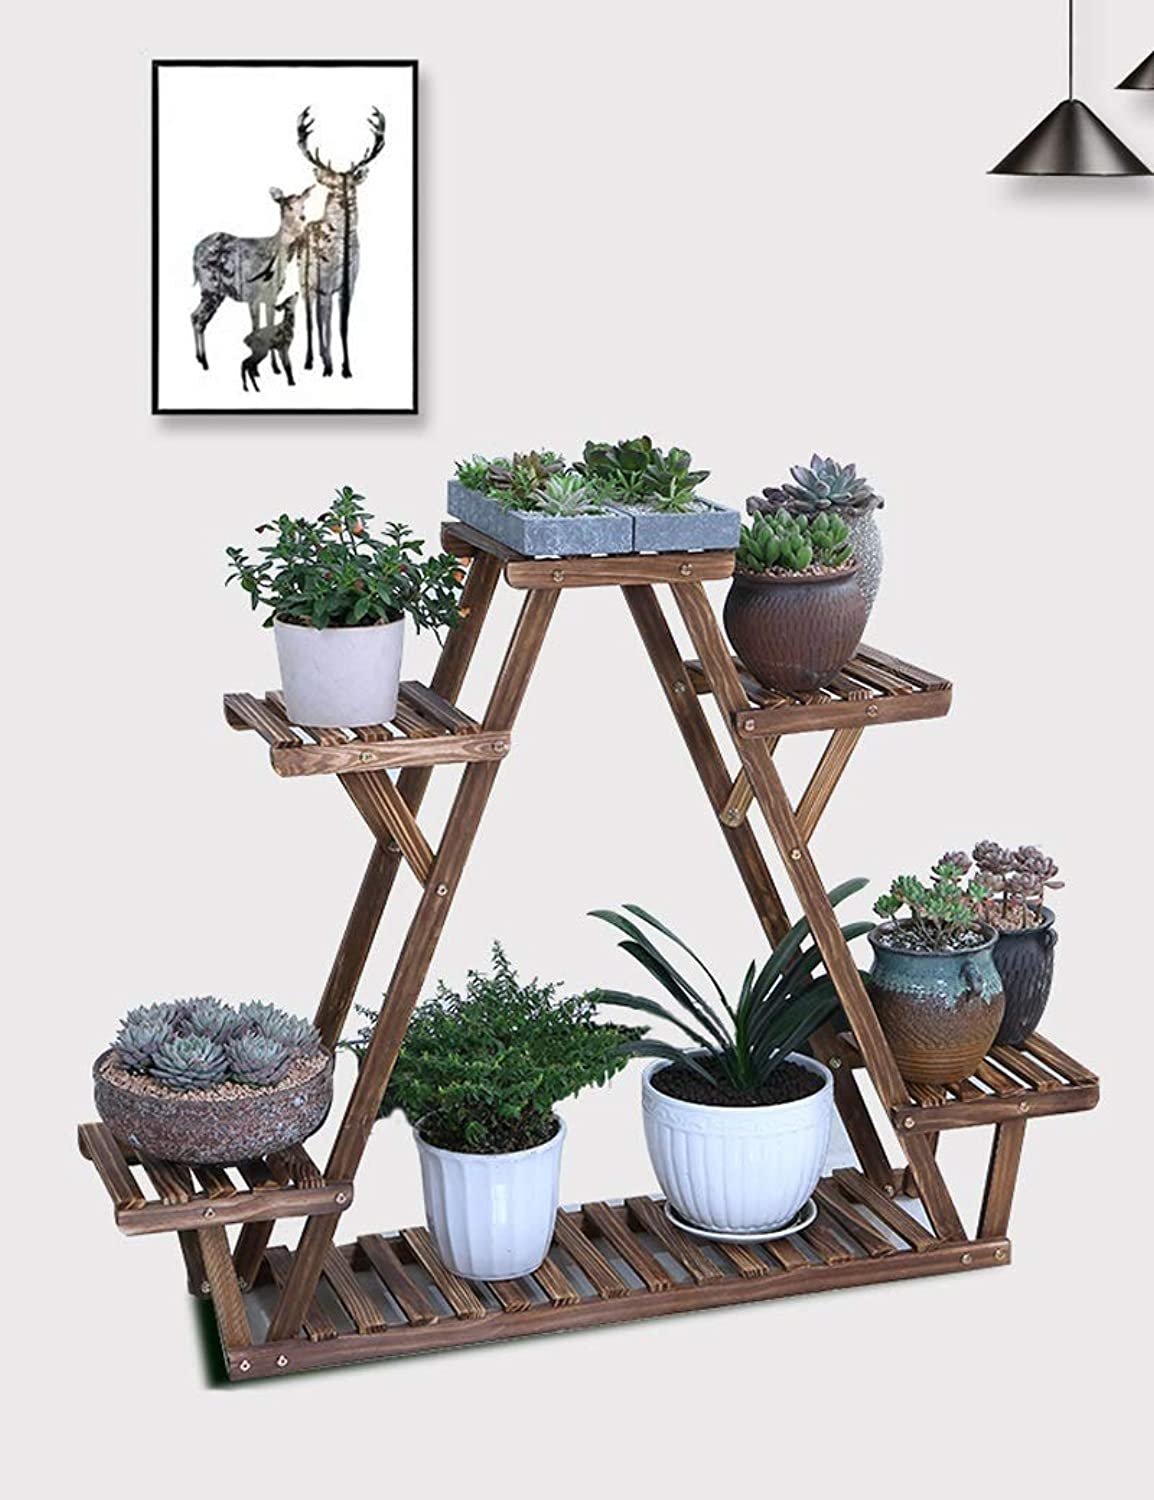 Flower Frame Solid Wood Multi-Storey Indoor Multi-Function Living Room Plant Potted Green Plant Balcony 6-Tier (Carbonized) (Size   113cmX20cmX85cm)